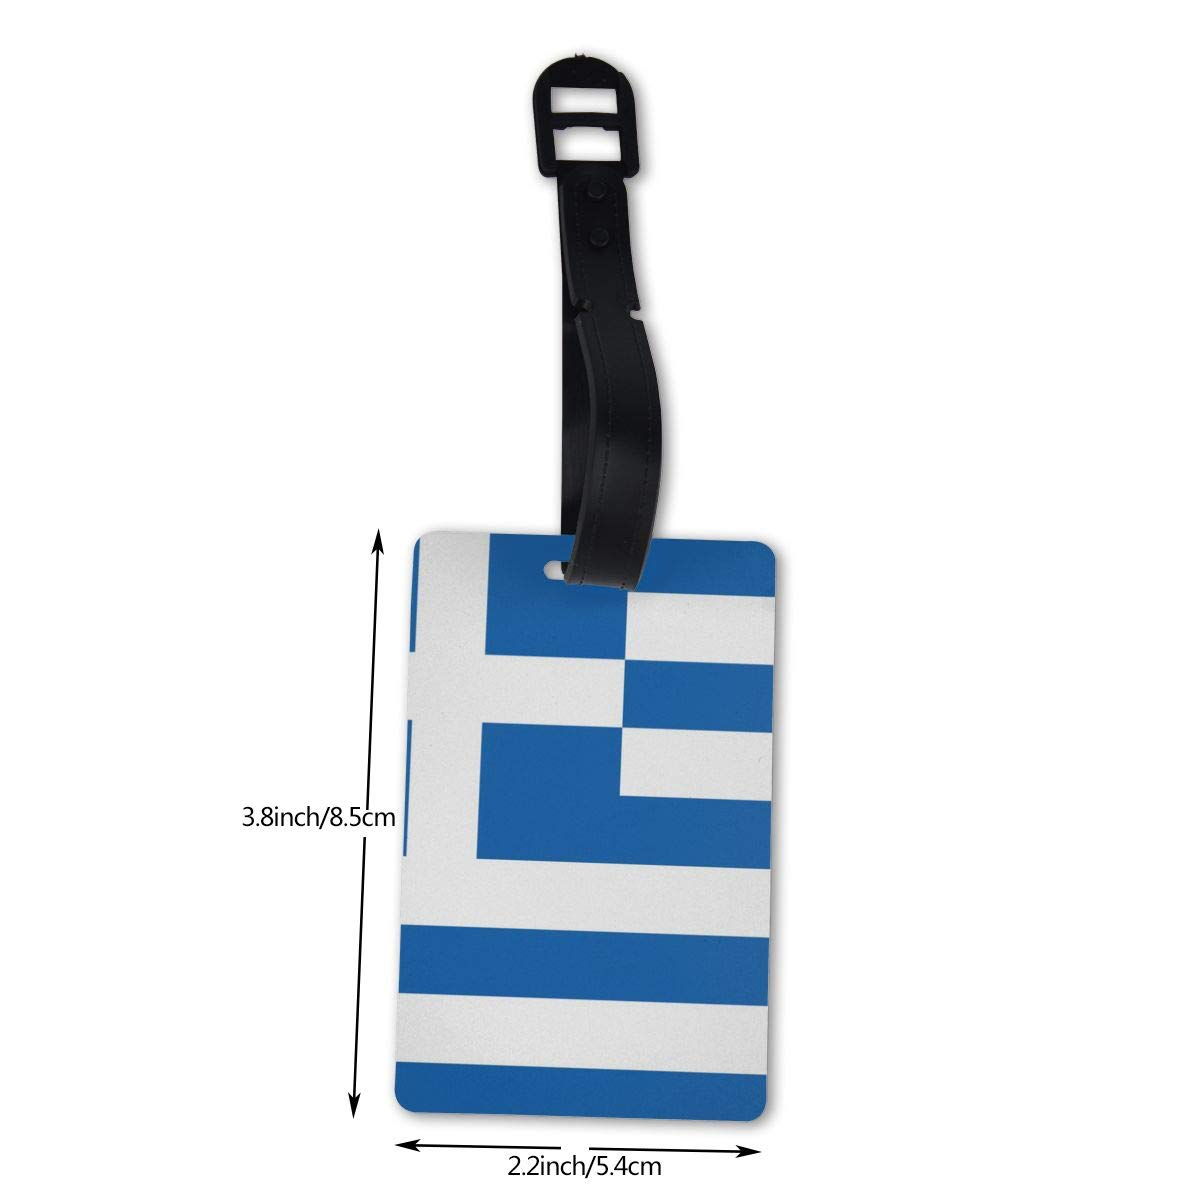 NB UUD Greece Flag Travel Luggage Tag Fashionable Employees Card Luggage Tag Holders Travel ID Identification Labels for Baggage Suitcases Bags